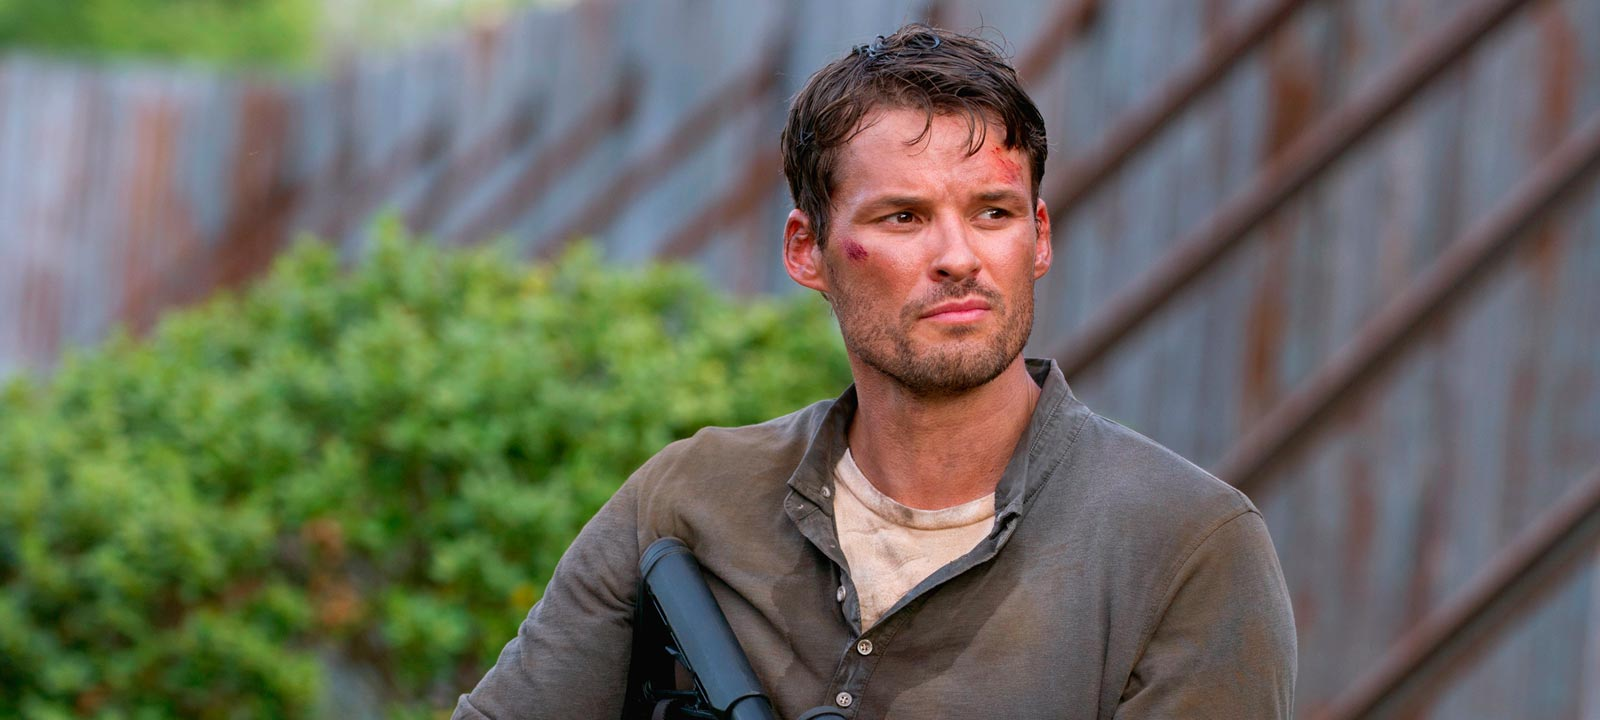 the-walking-dead-episode-602-spencer-nichols-800×600